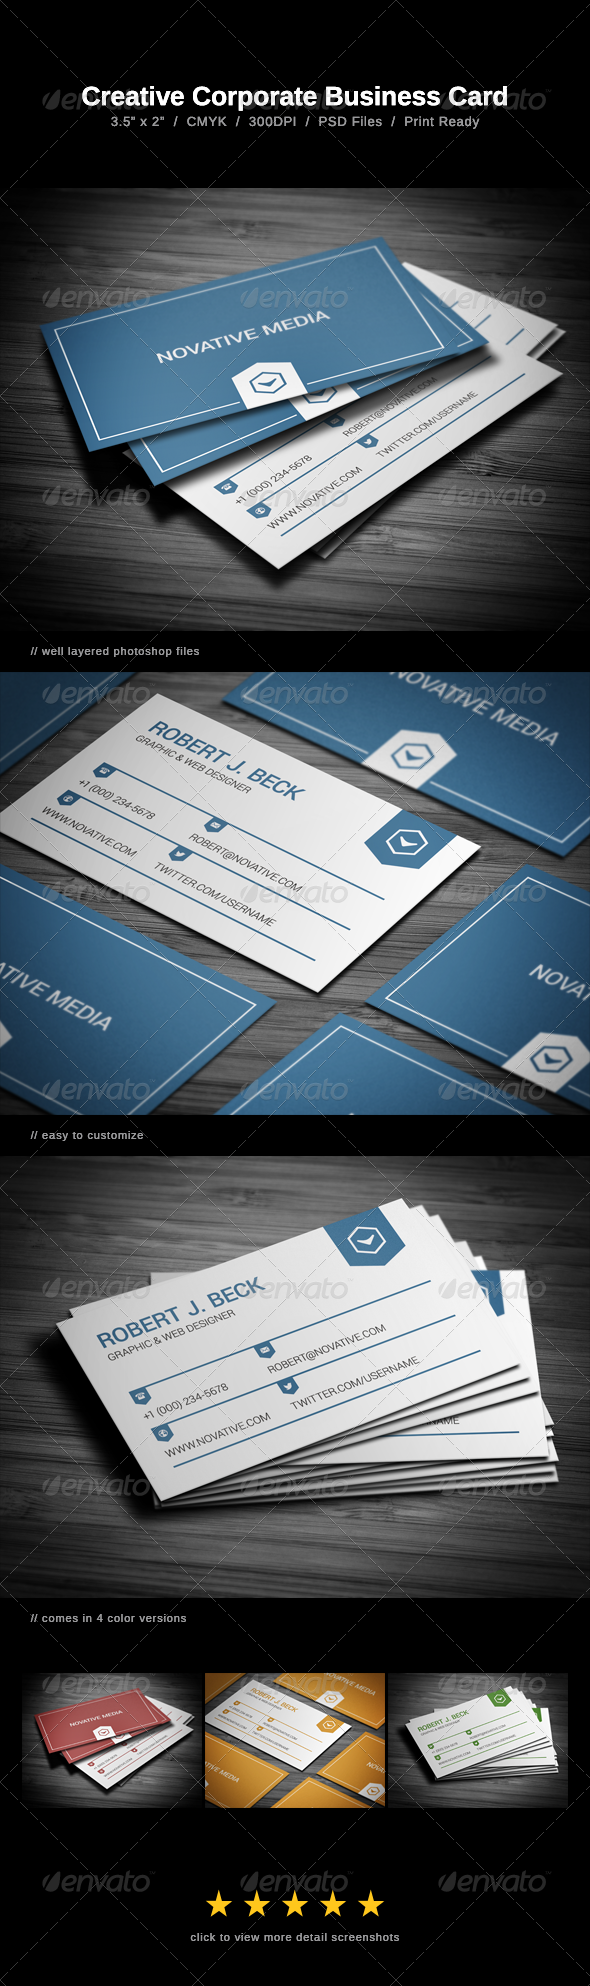 Creative Corporate Business Card - Business Cards Print Templates